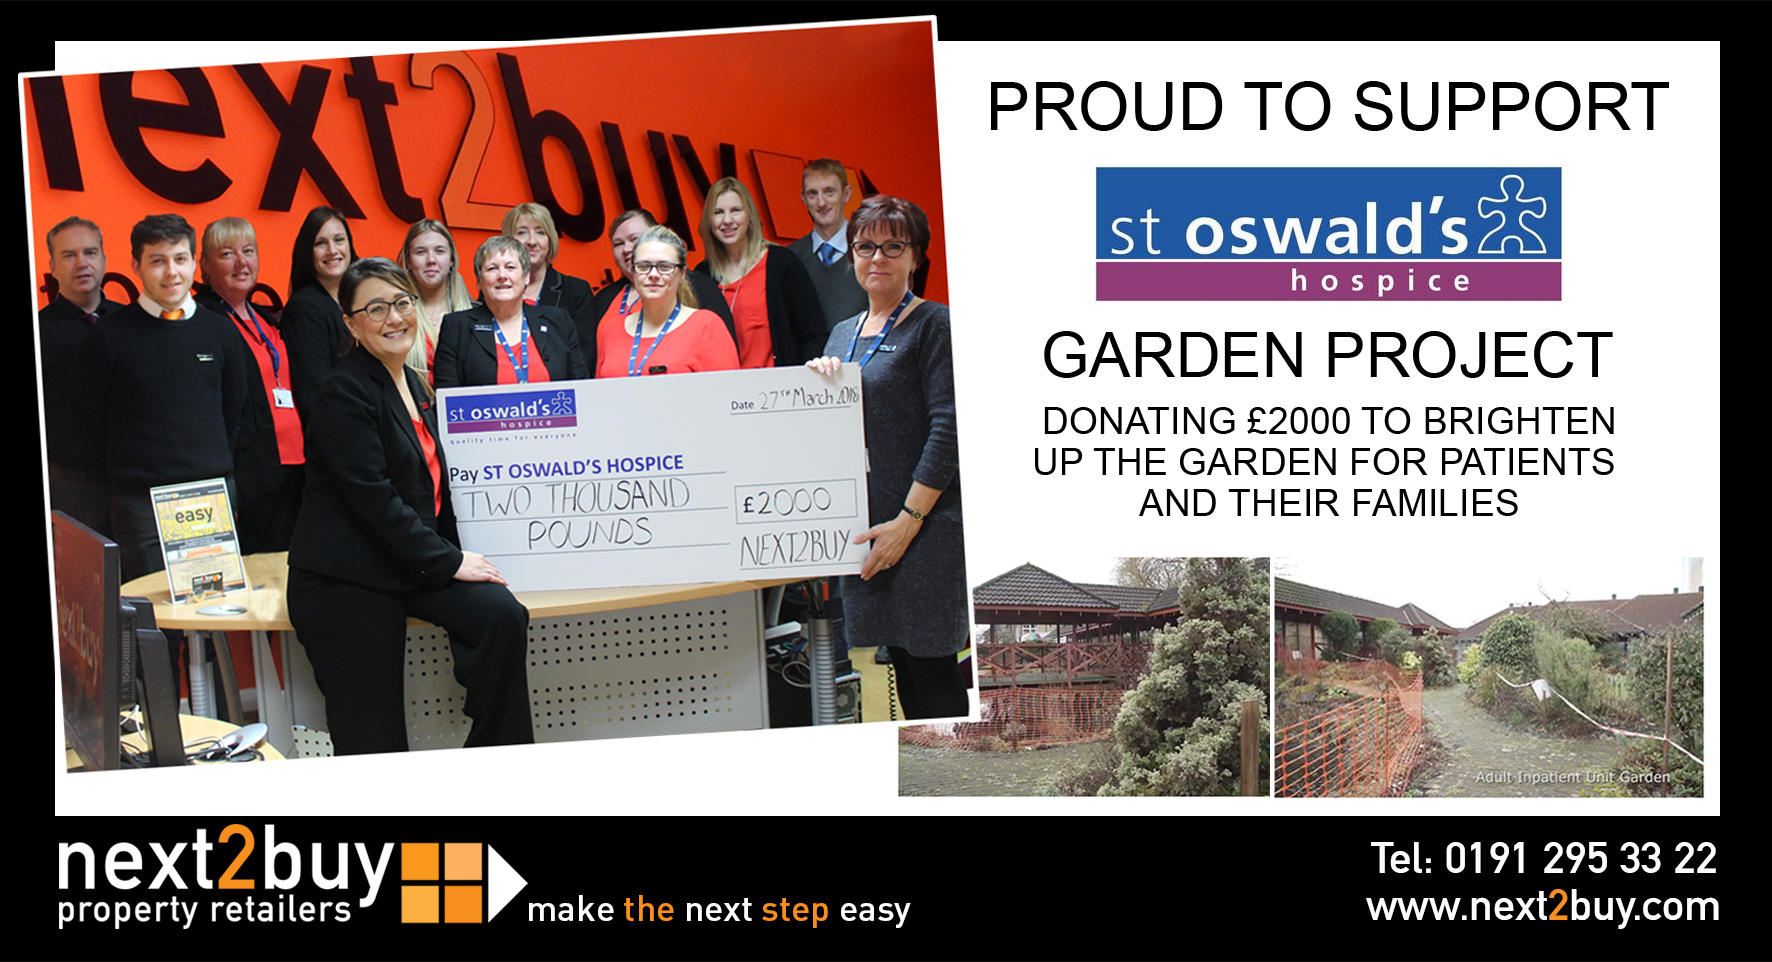 DONATION OF £2000 TO ST OSWALD'S HOSPICE